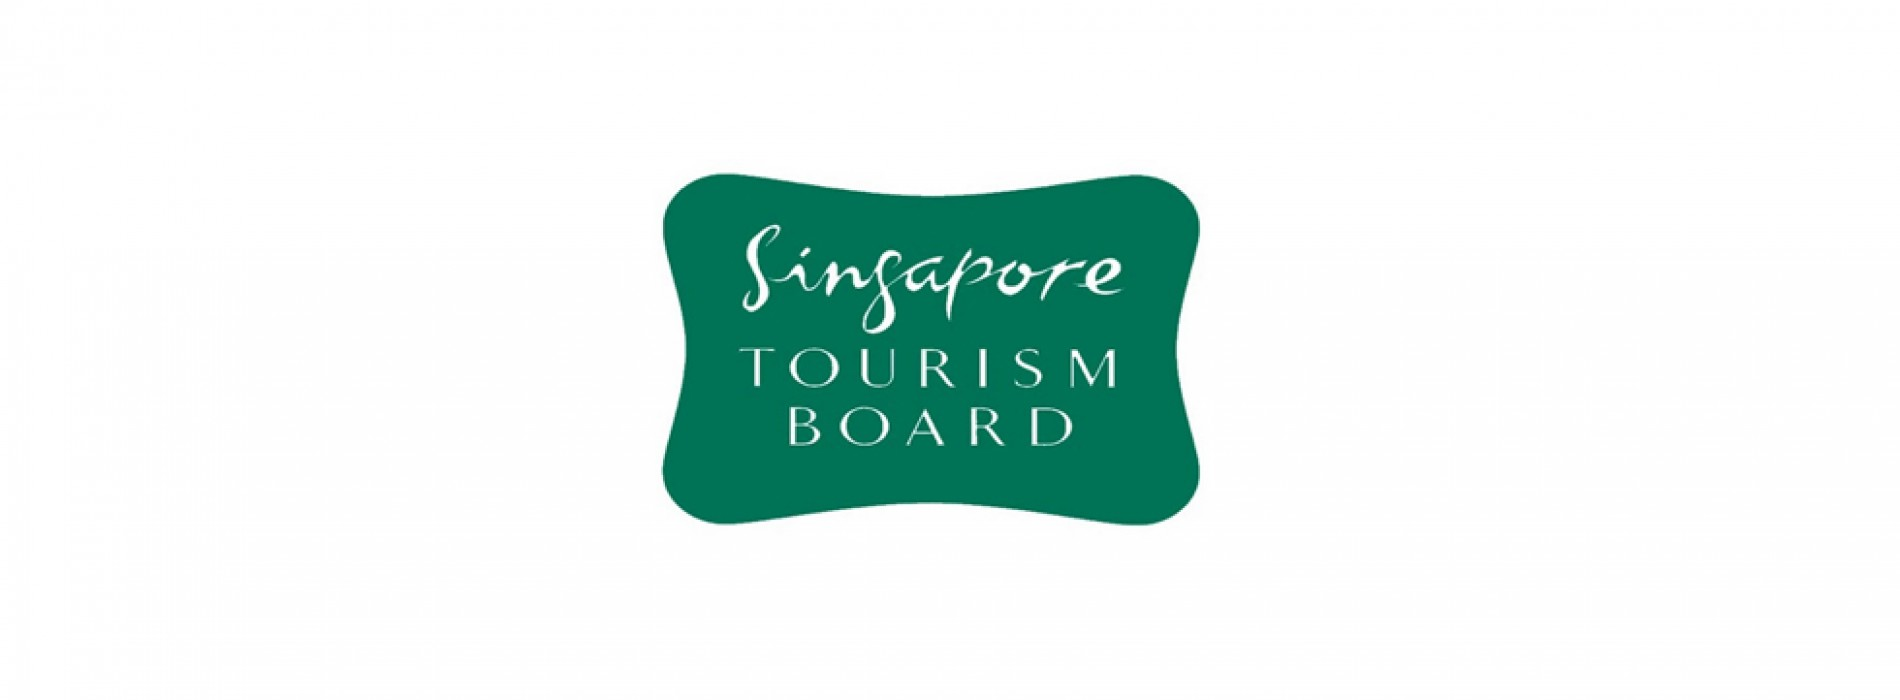 Singapore Tourism Board brings 'Passion made Possible' to life with the Singapore Weekender at Mumbai's Sassoon Docks